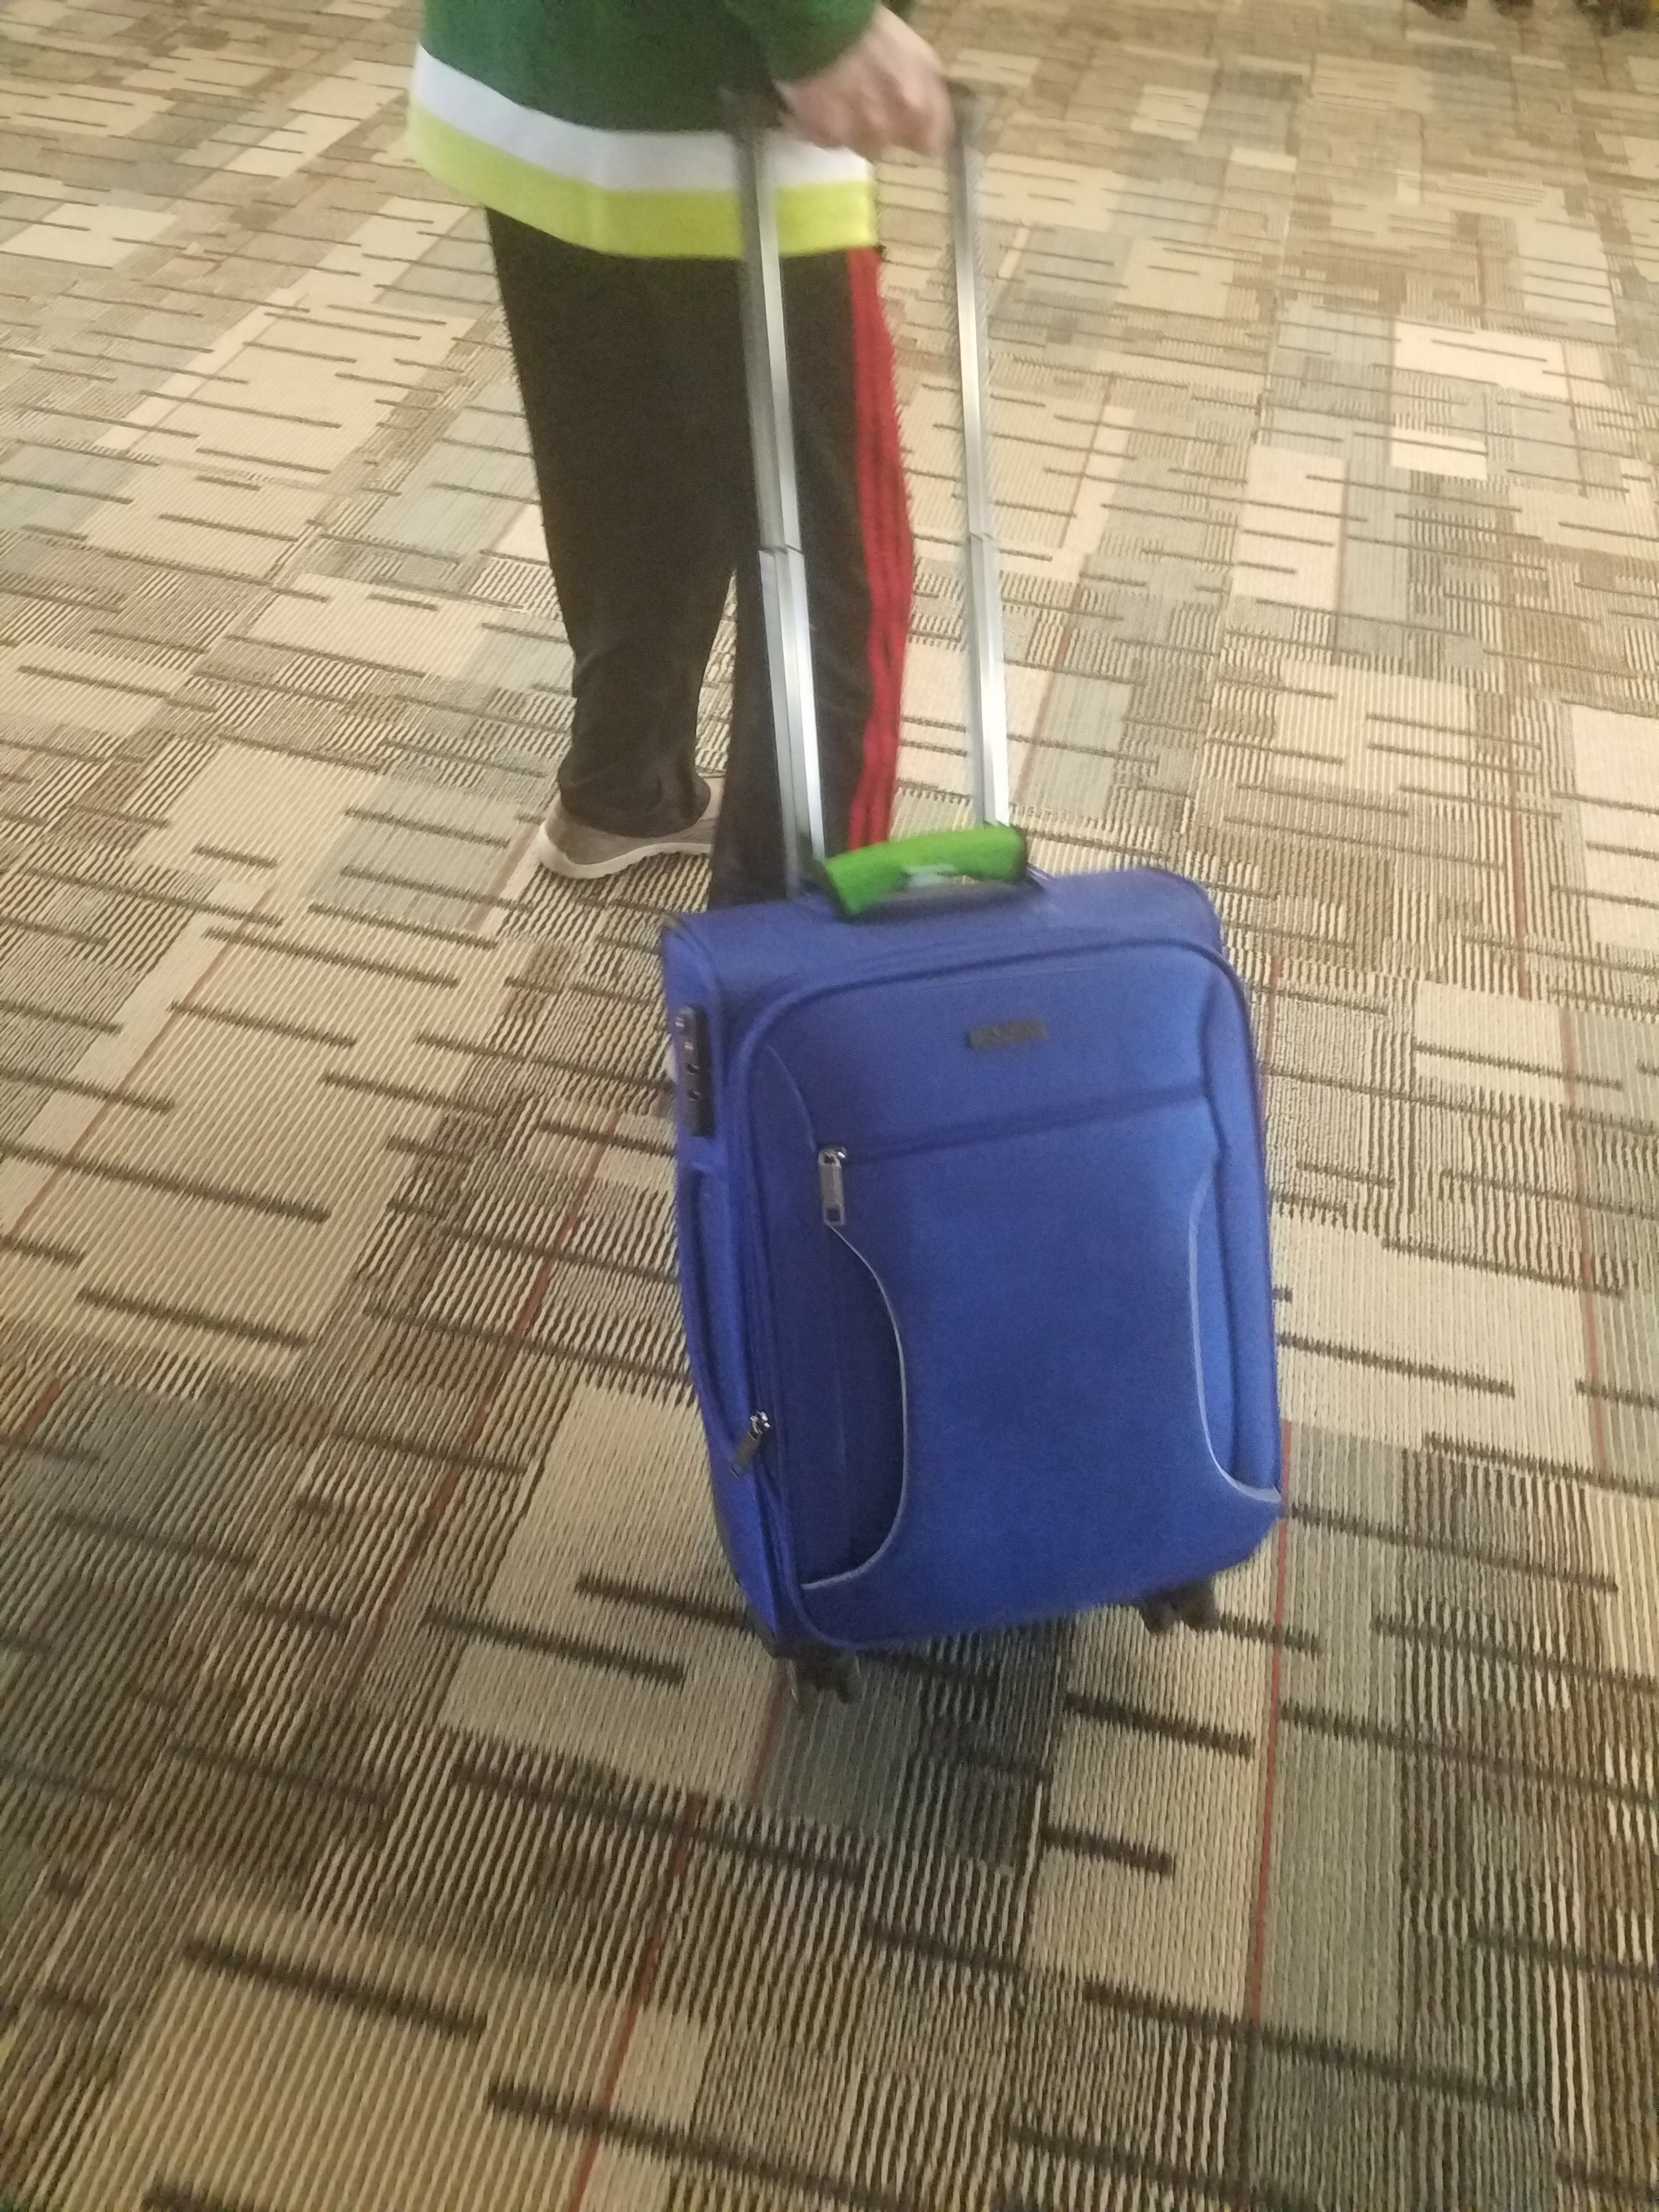 - If you noticed anything about the suitcase pulled by the man, it may be the bright blue color of the bag or the green handle tag with the words,